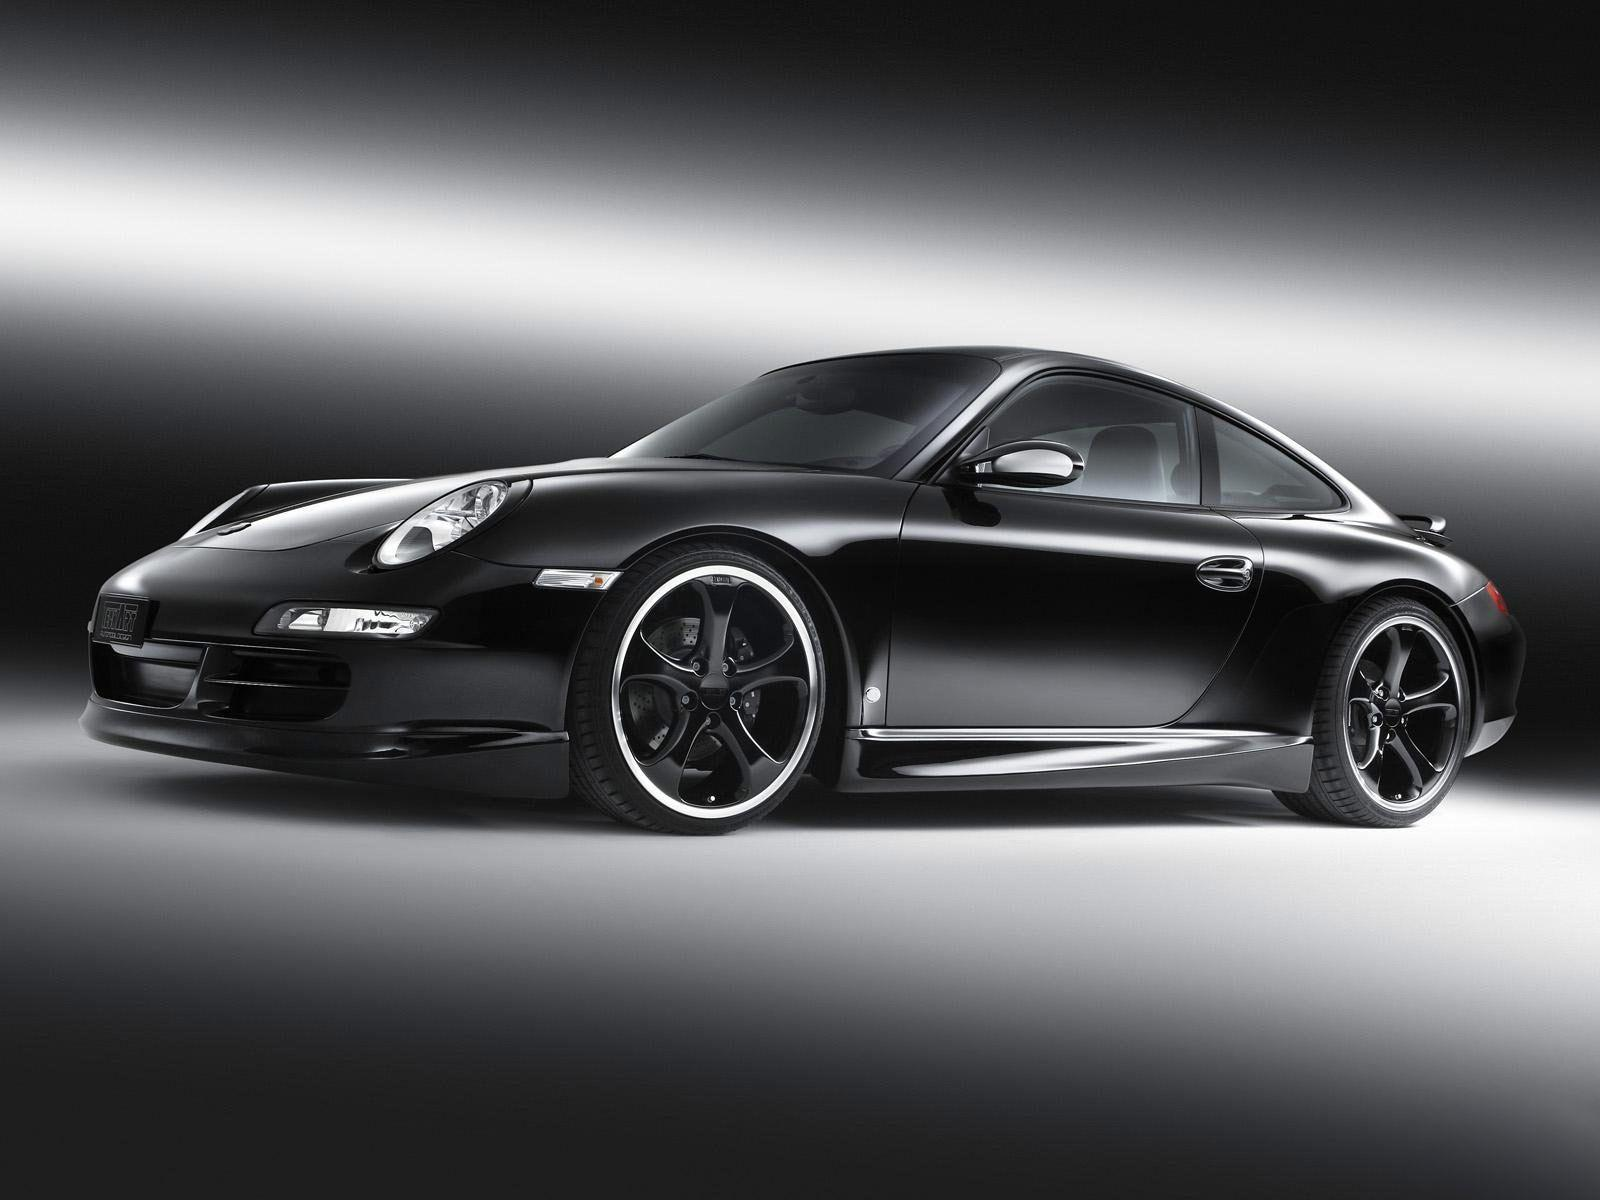 Porsche Car 911 Wallpapers Porsche Images Porsche 911 Car Picture ...